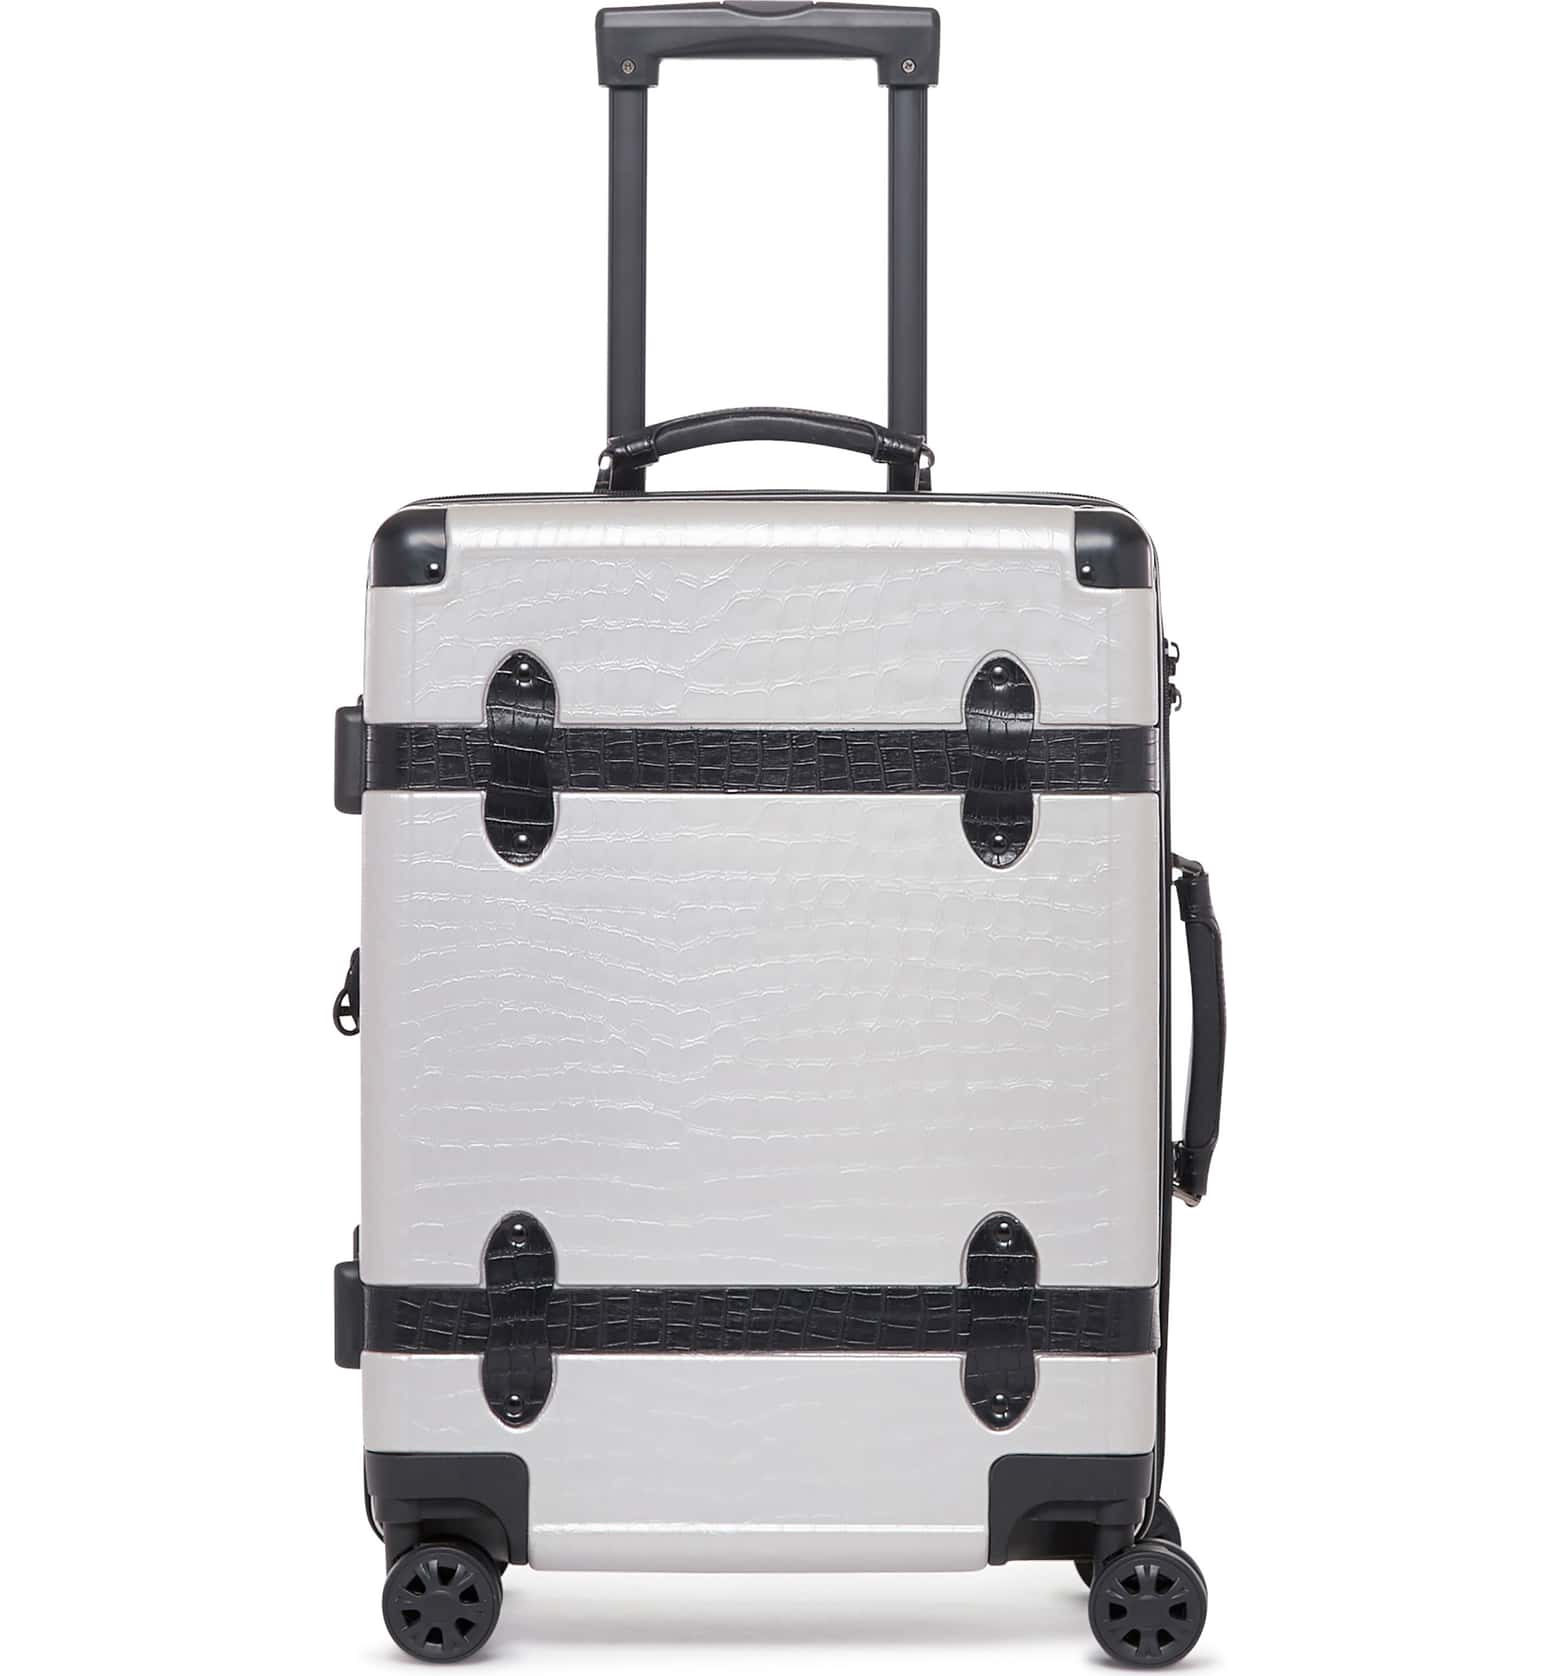 best luggage why invest in expensive suitcase travel tips carry-on calpak Trunk 22-Inch Rolling Suitcase